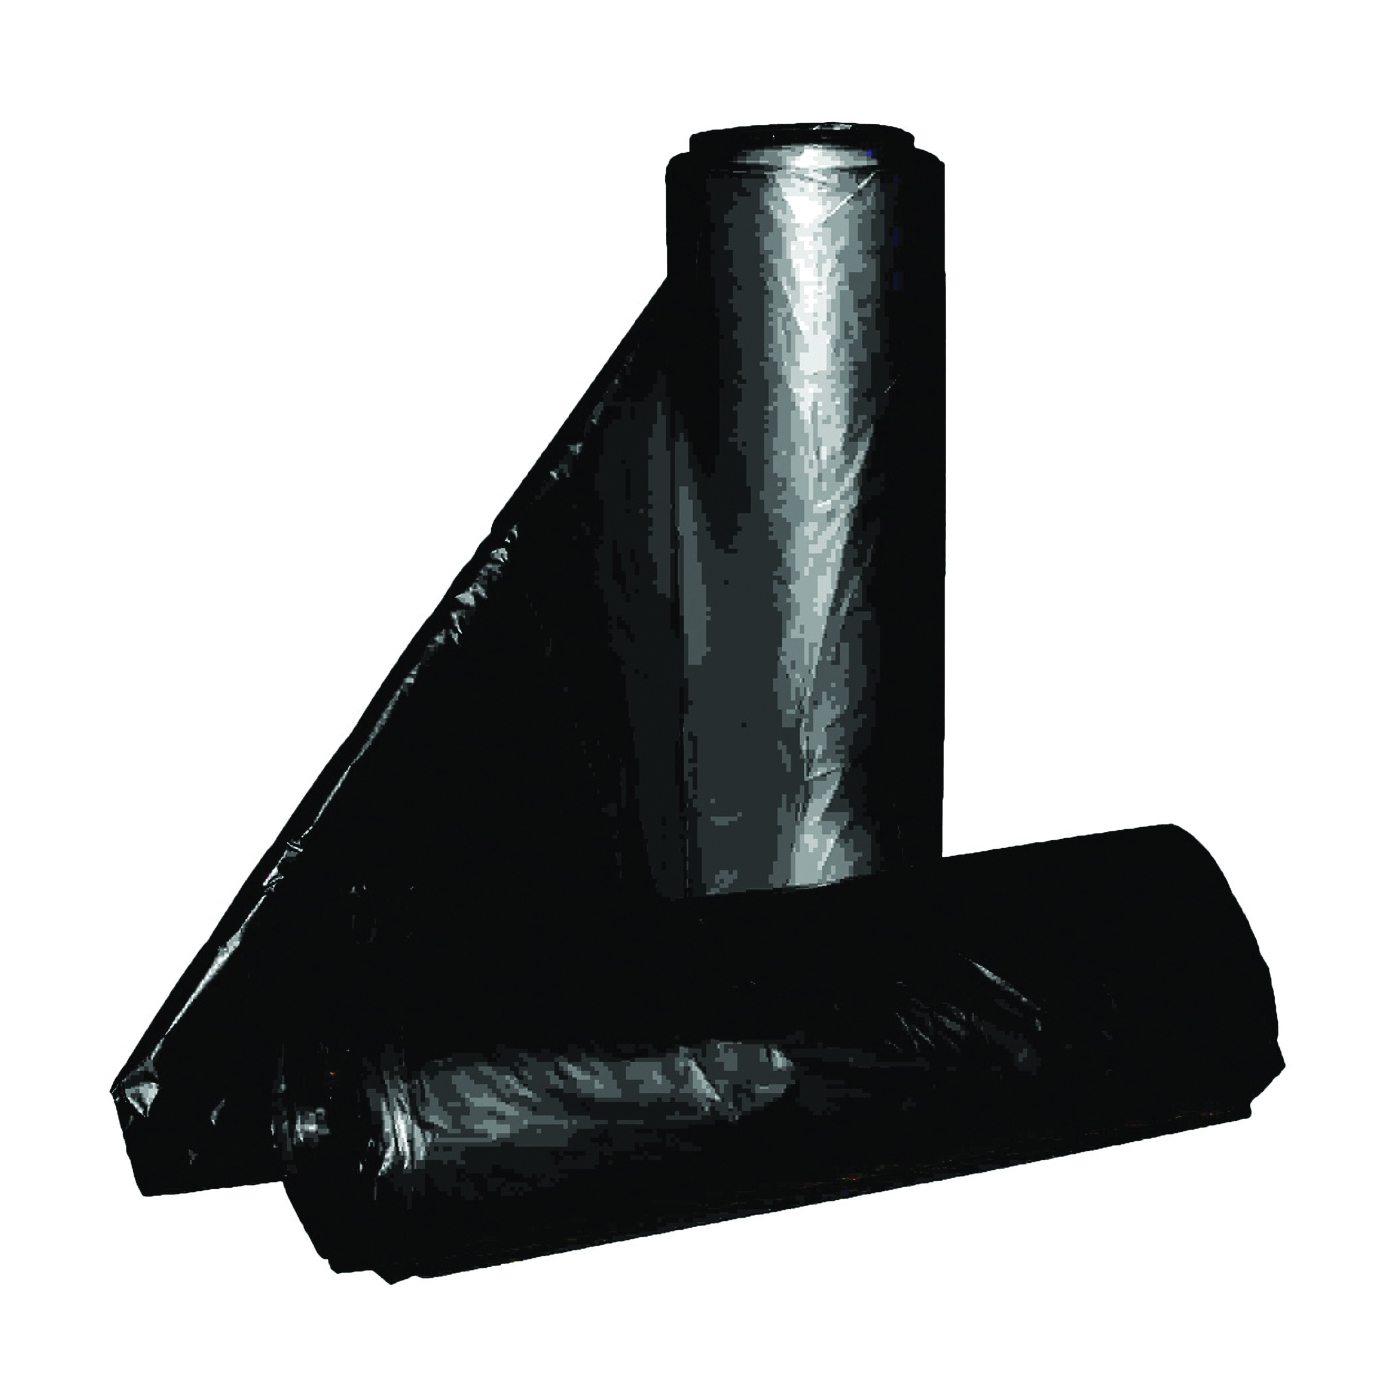 Picture of ALUF PLASTICS RL Series RL-3858XH Can Liner, 55 to 60 gal Capacity, Repro Blend, Black